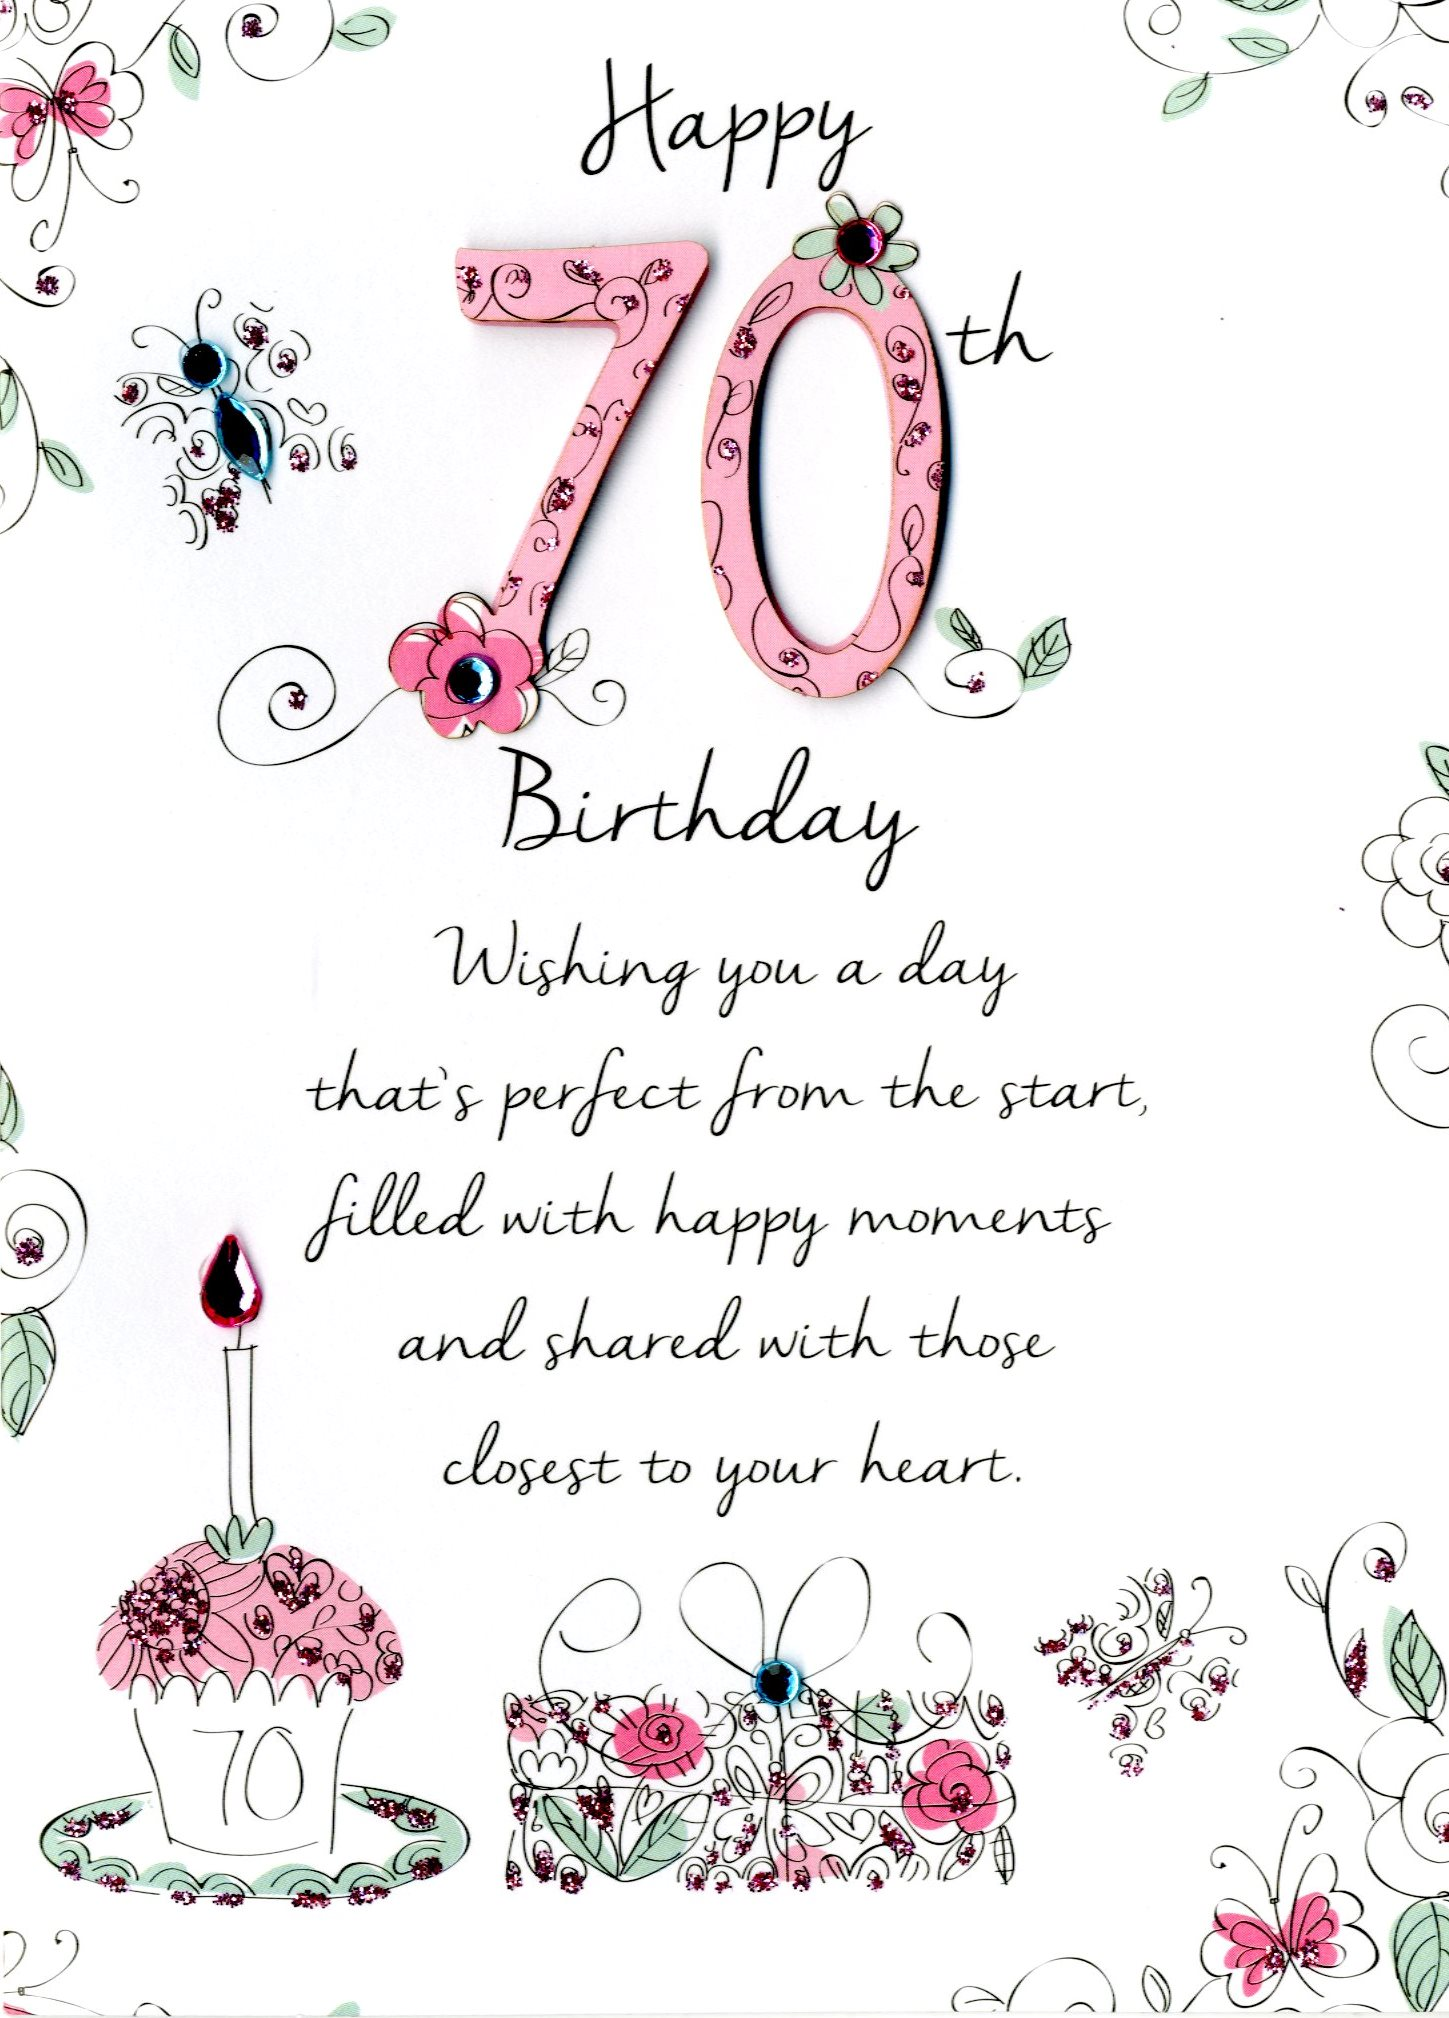 70th birthday card messages dad ; JT032